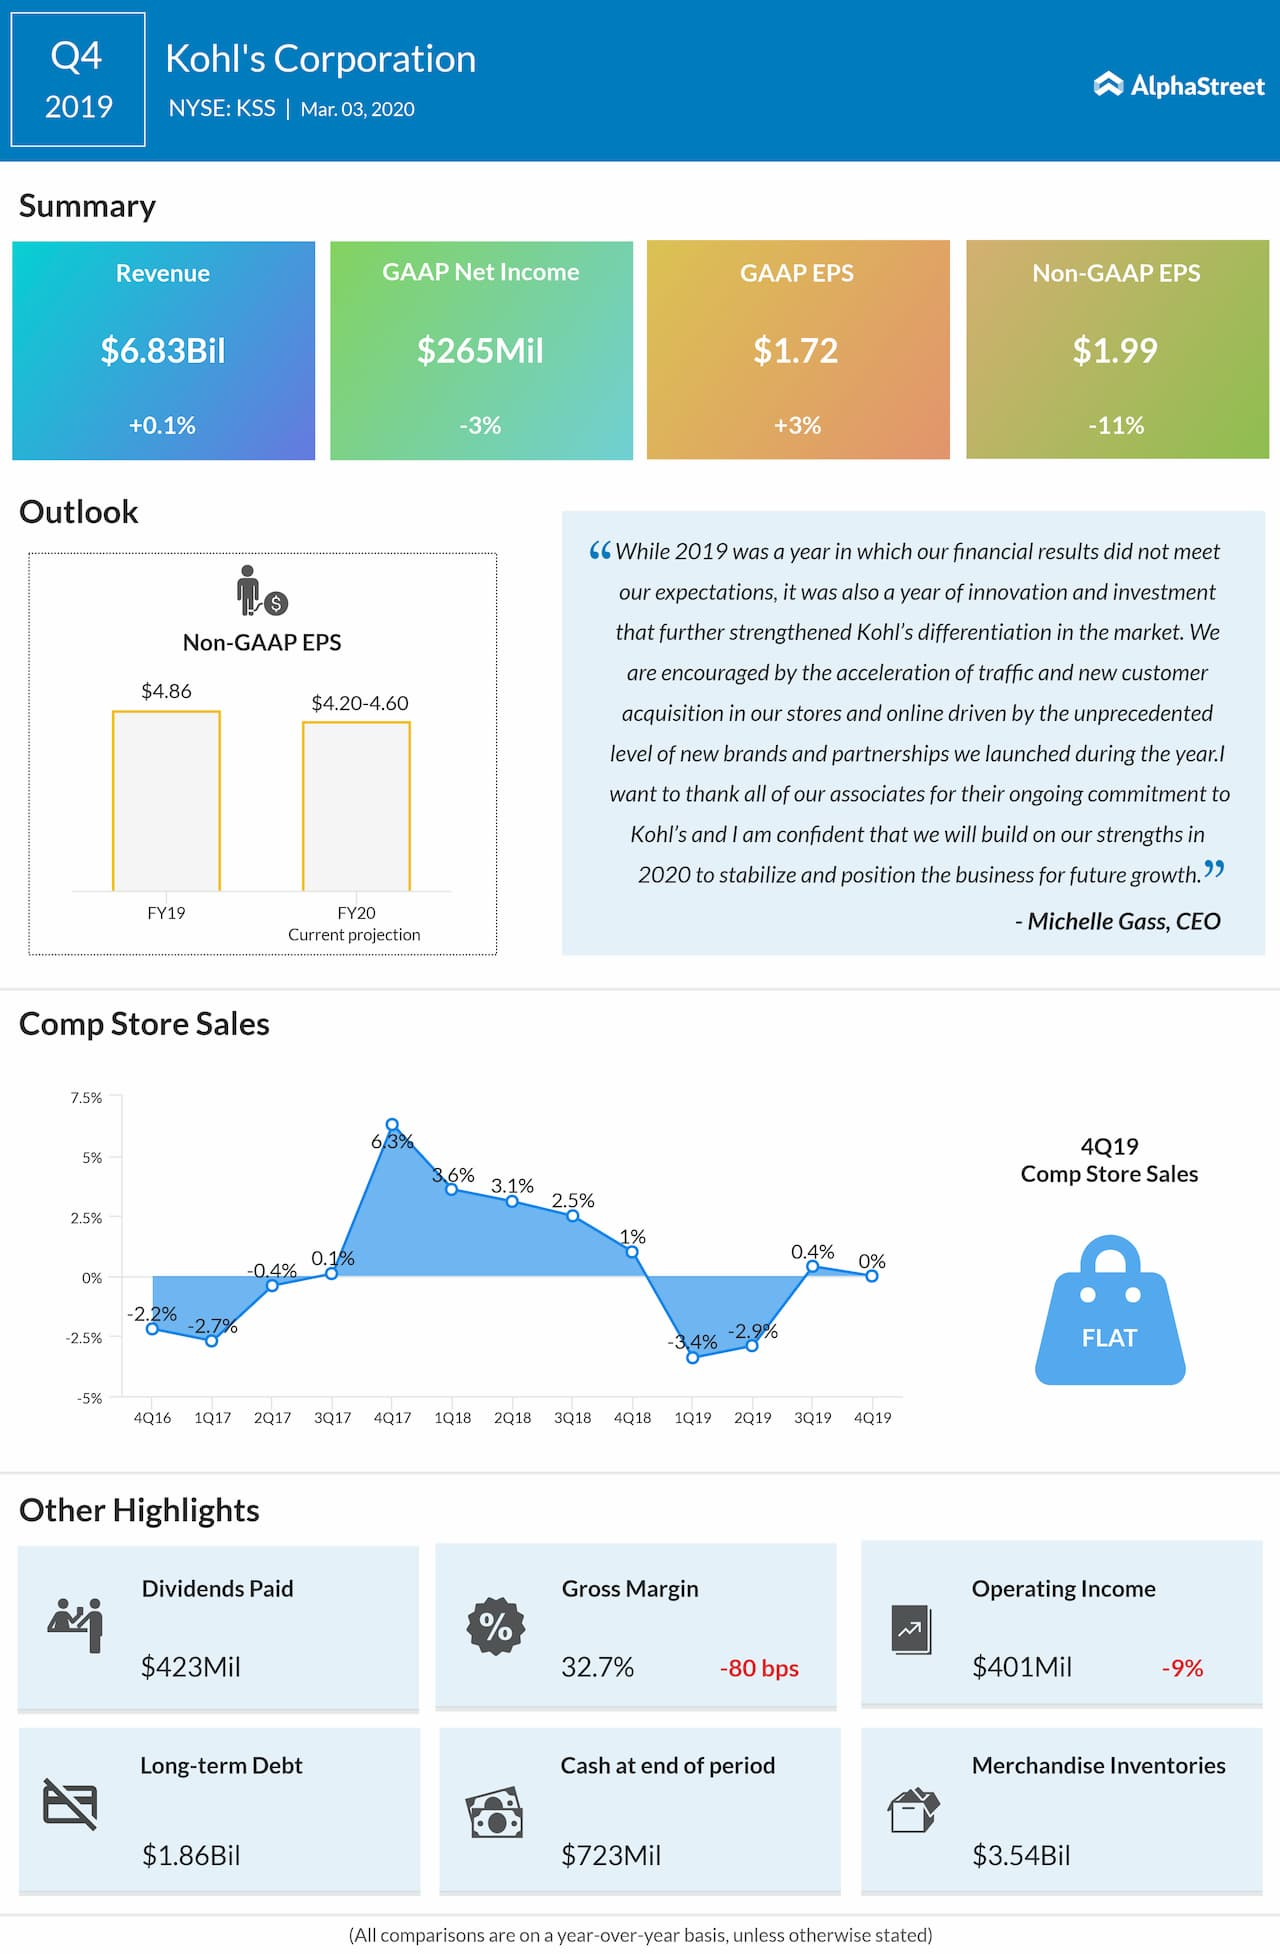 Kohl's Corporation (KSS) Q4 2019 earnings review